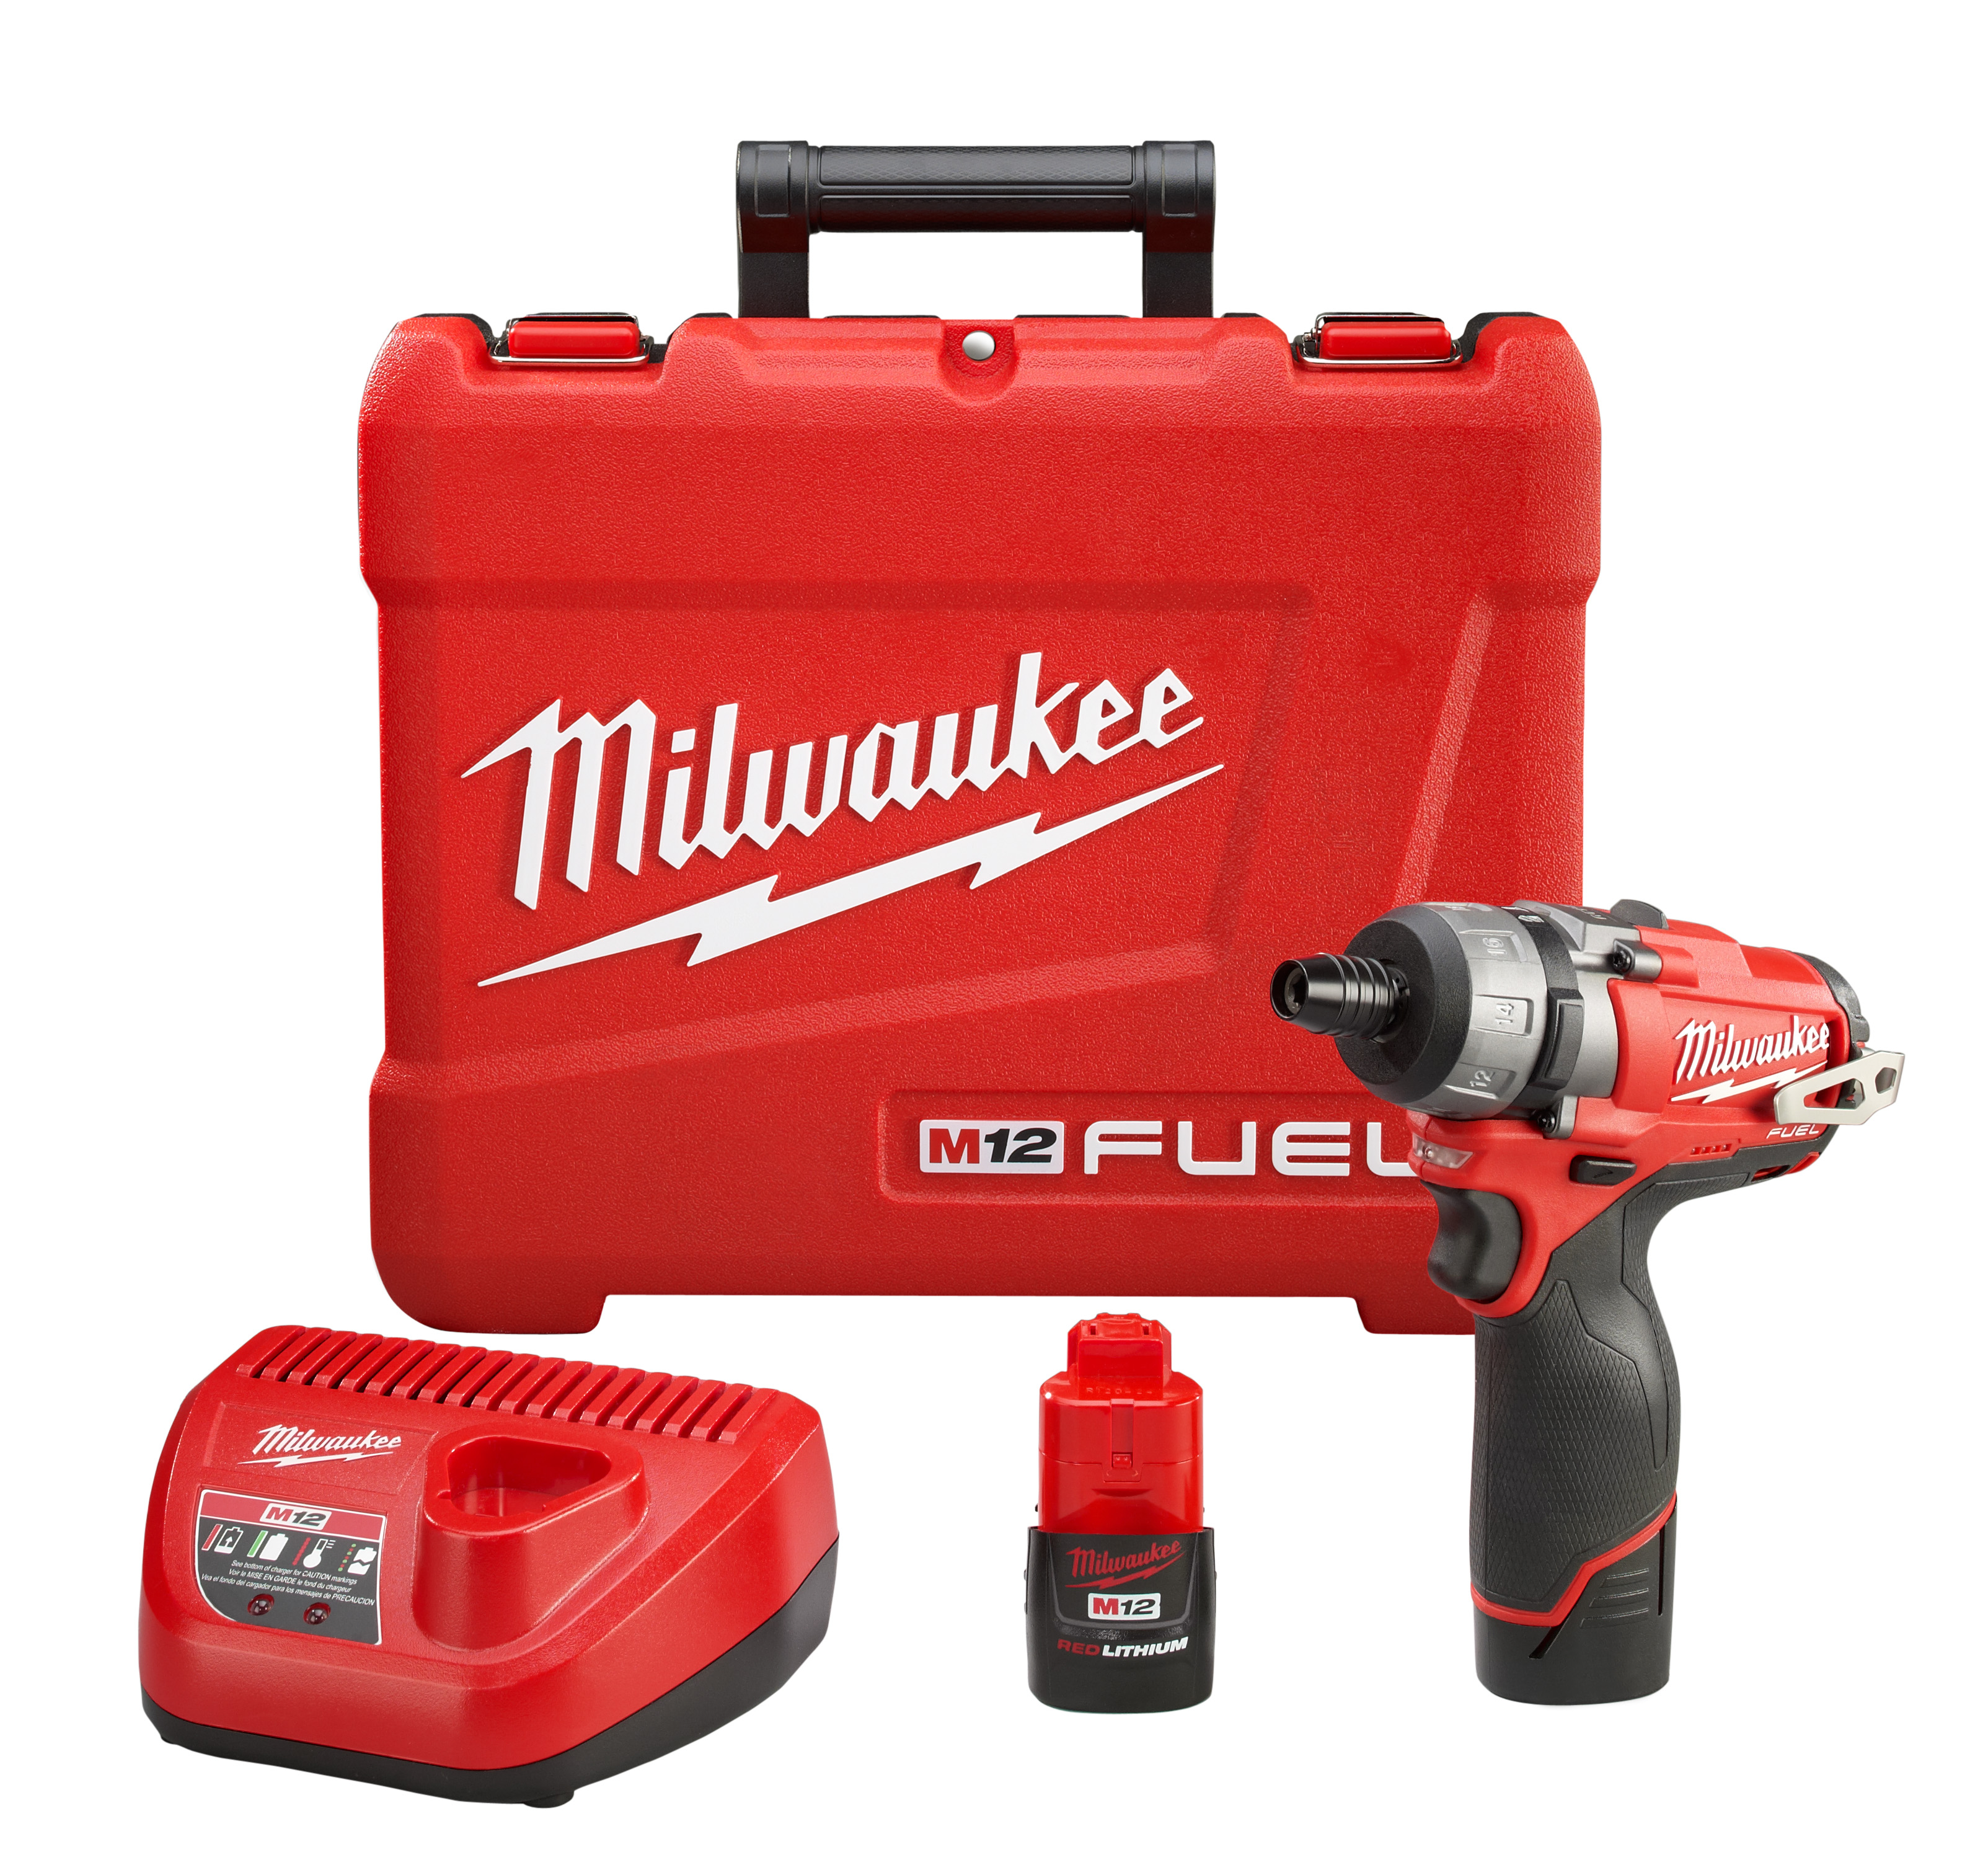 Milwaukee® M12™ FUEL™ 2402-22 2-Speed Screwdriver Kit, 1/4 in Chuck, 12 VDC, 350 in-lb Torque, Lithium-Ion Battery